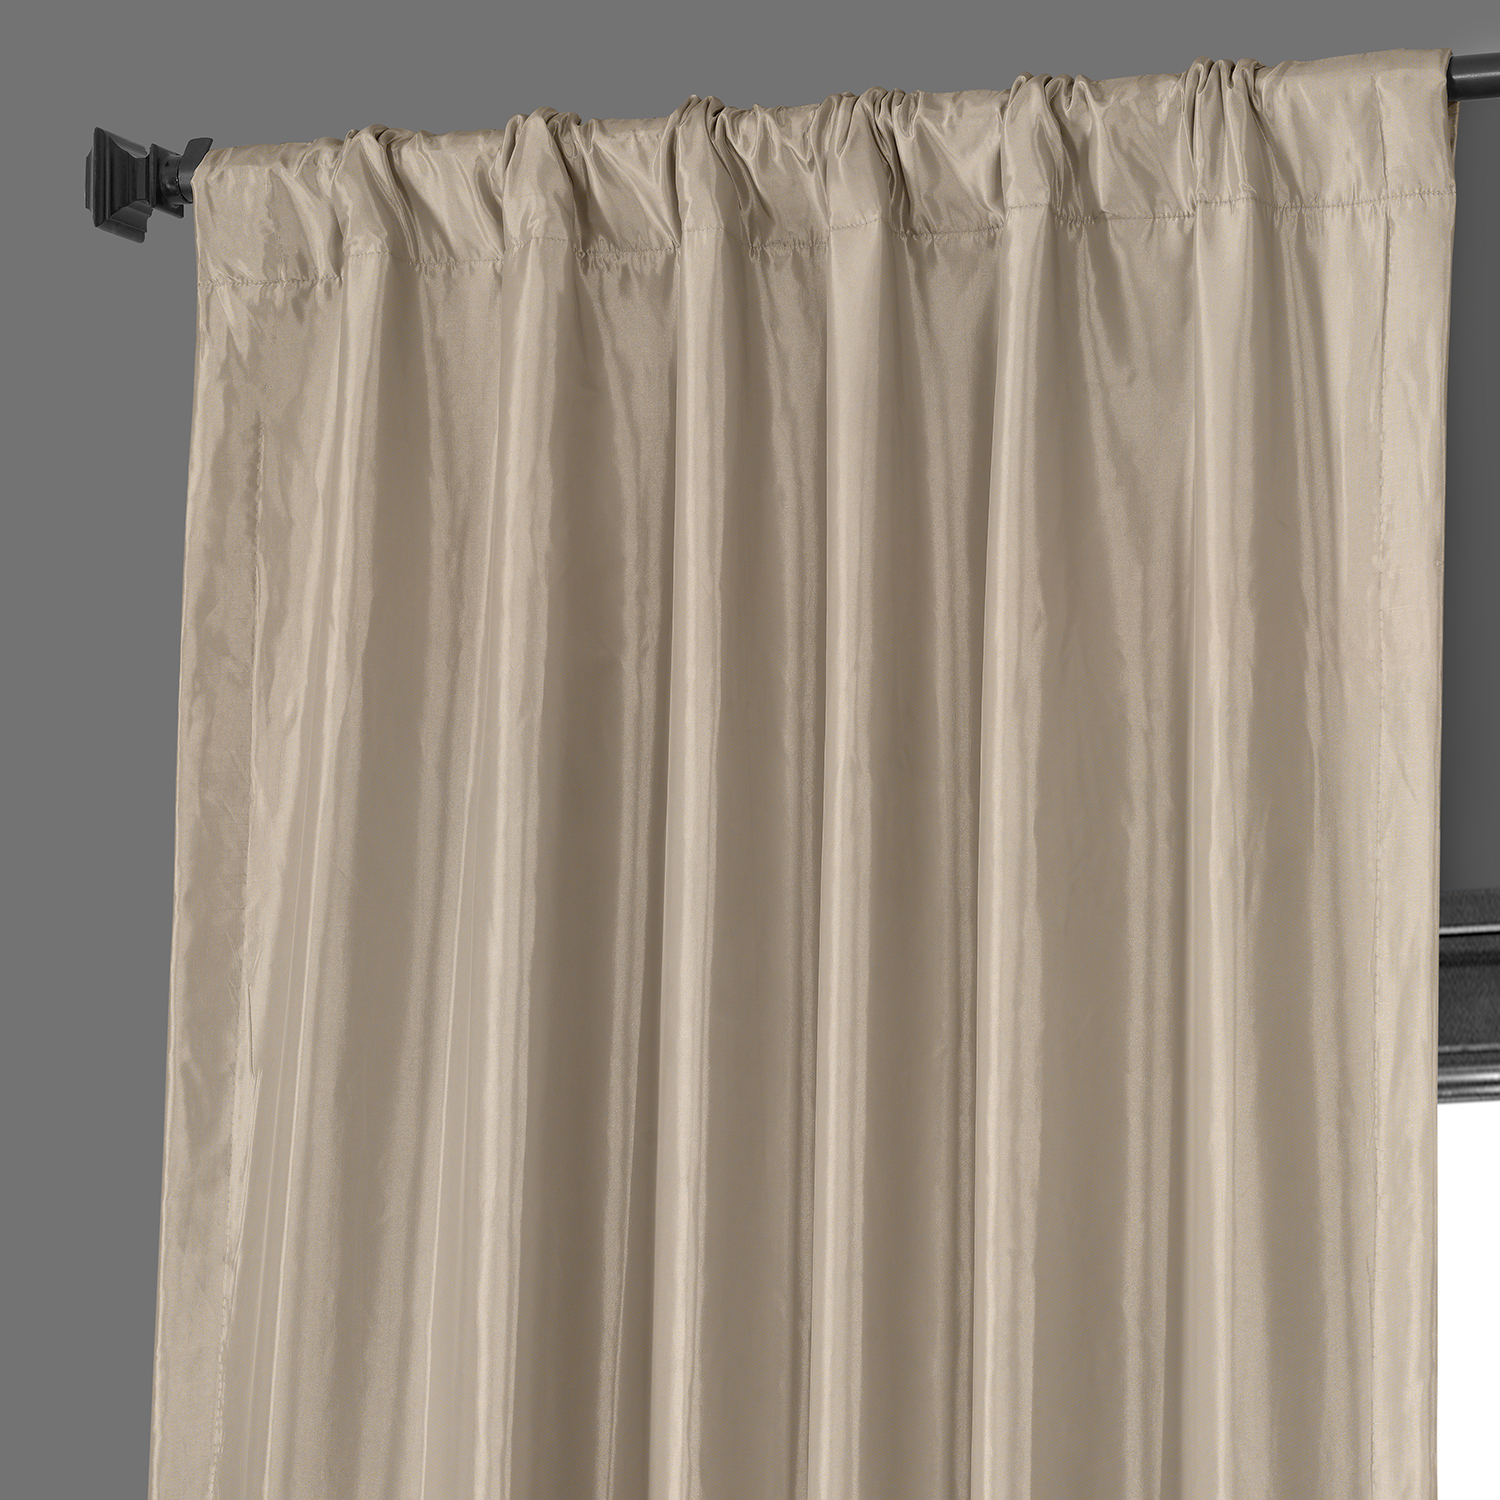 Antique Beige Blackout Faux Silk Taffeta Curtain